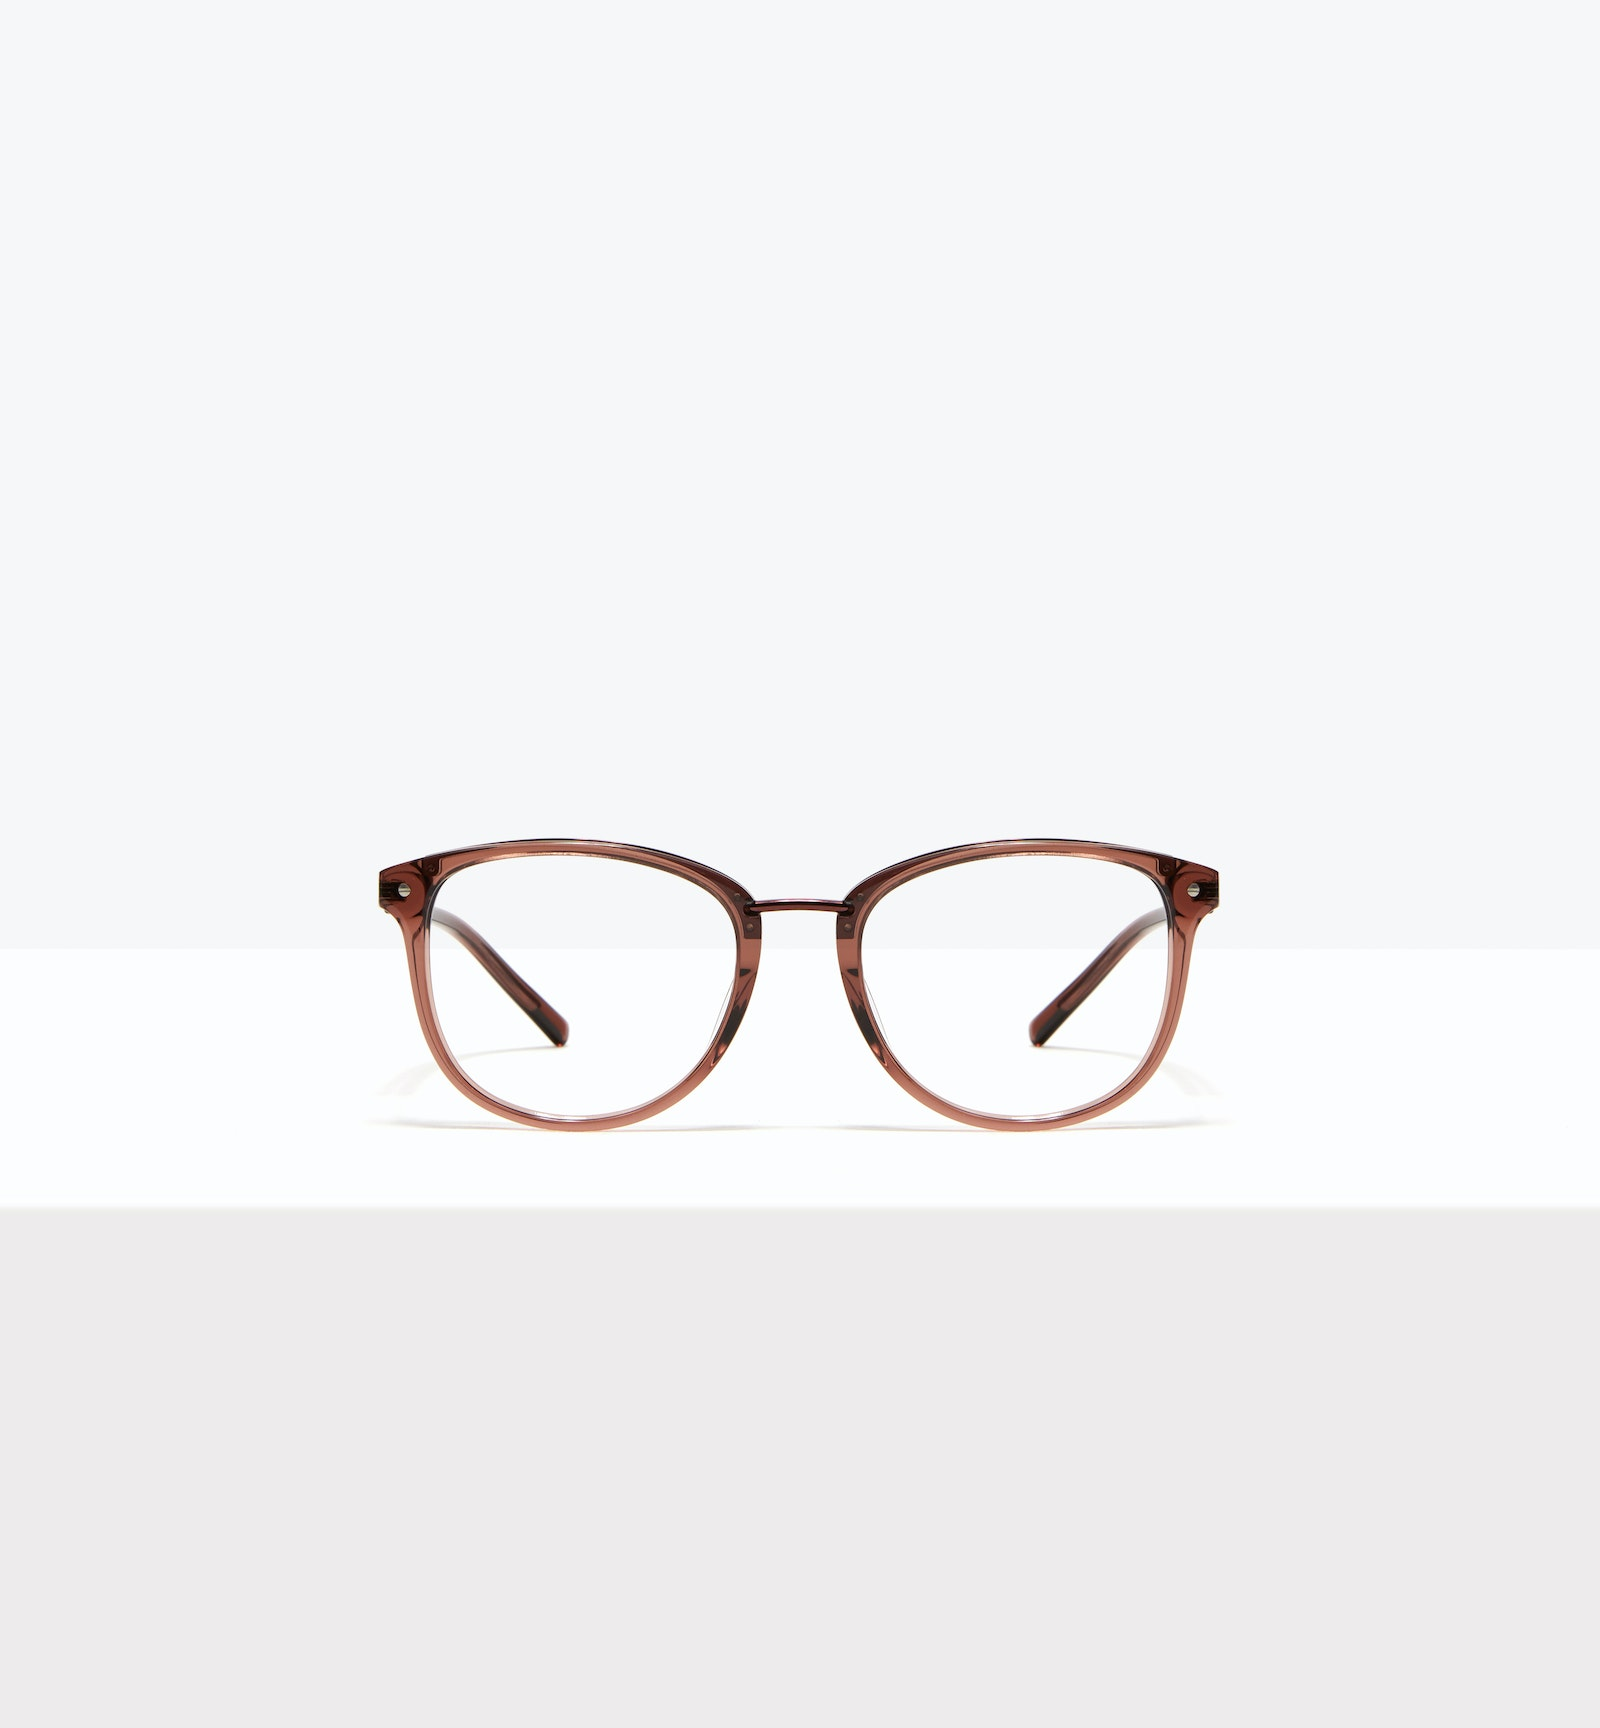 Affordable Fashion Glasses Square Round Eyeglasses Women Bella Terra